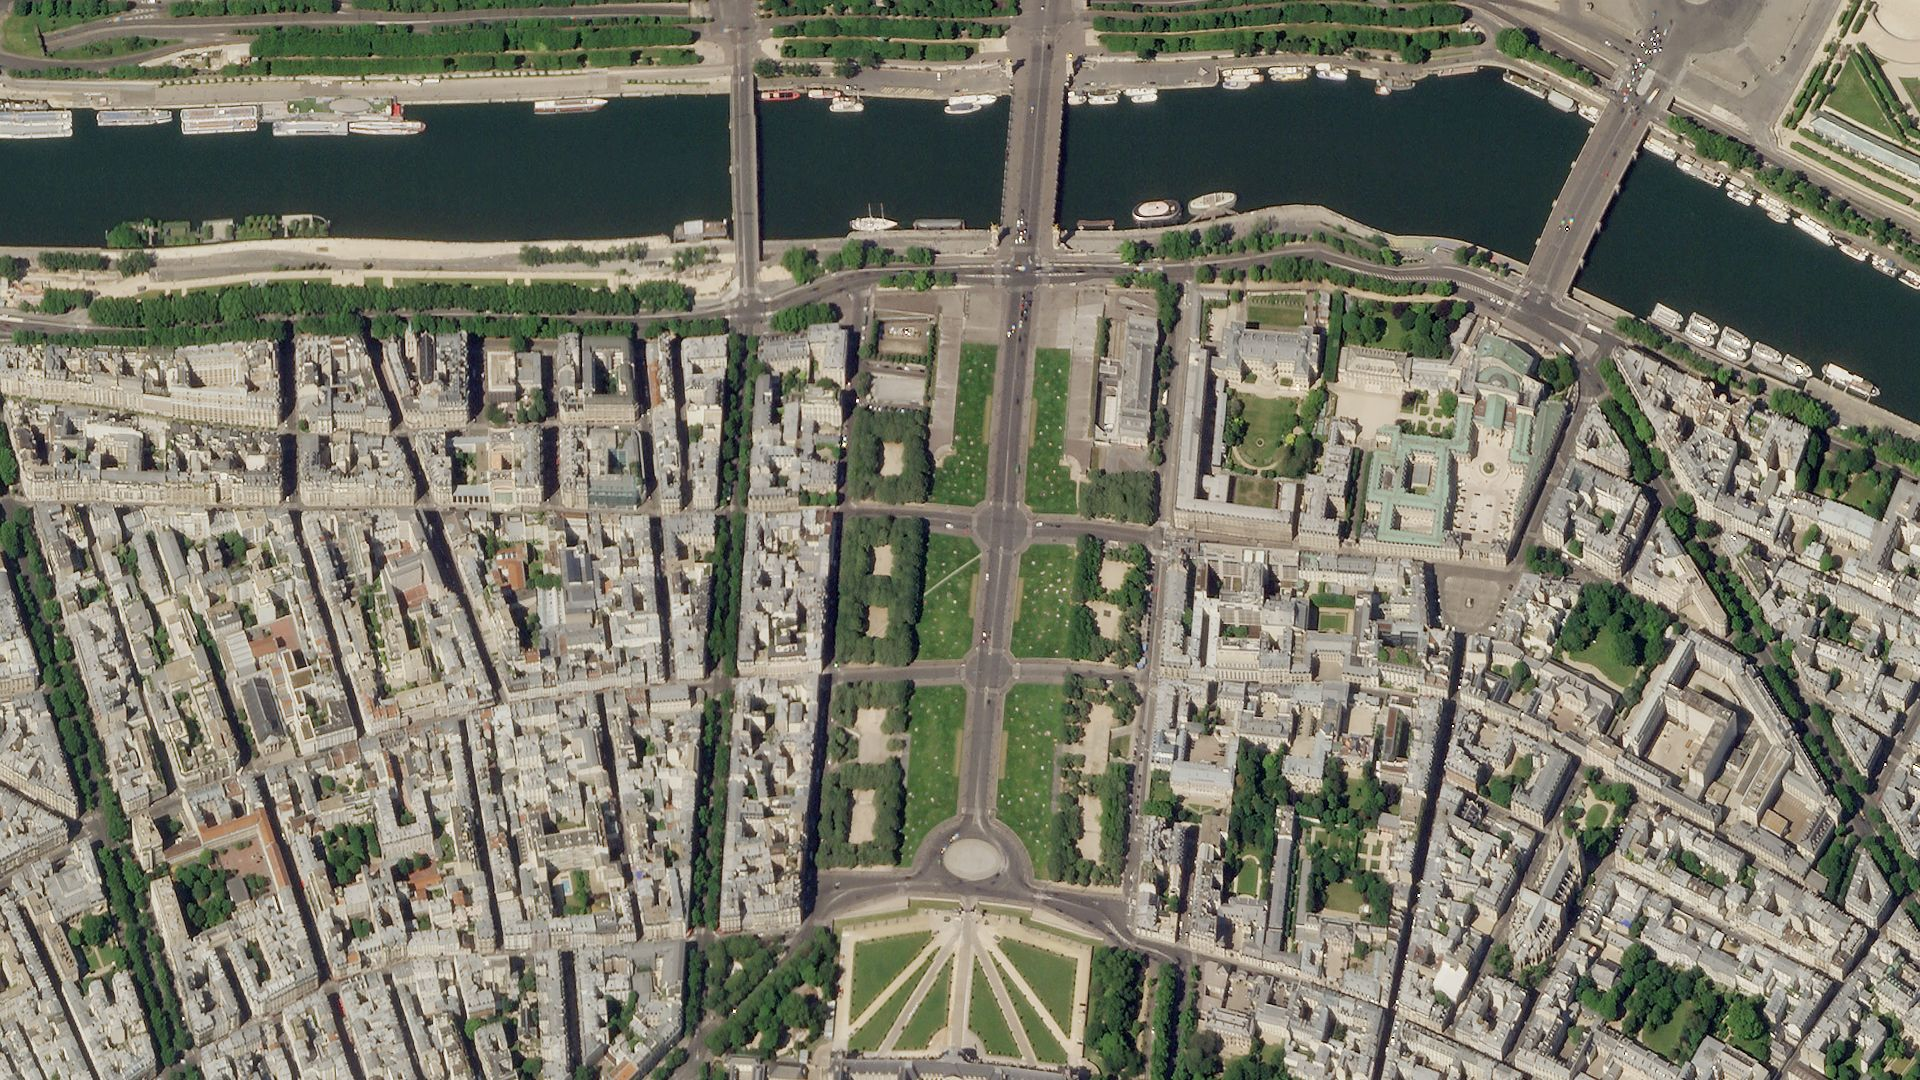 SkySat image of Paris, France on May 17, 2020 © 2020, Planet Labs Inc. All Rights Reserved.